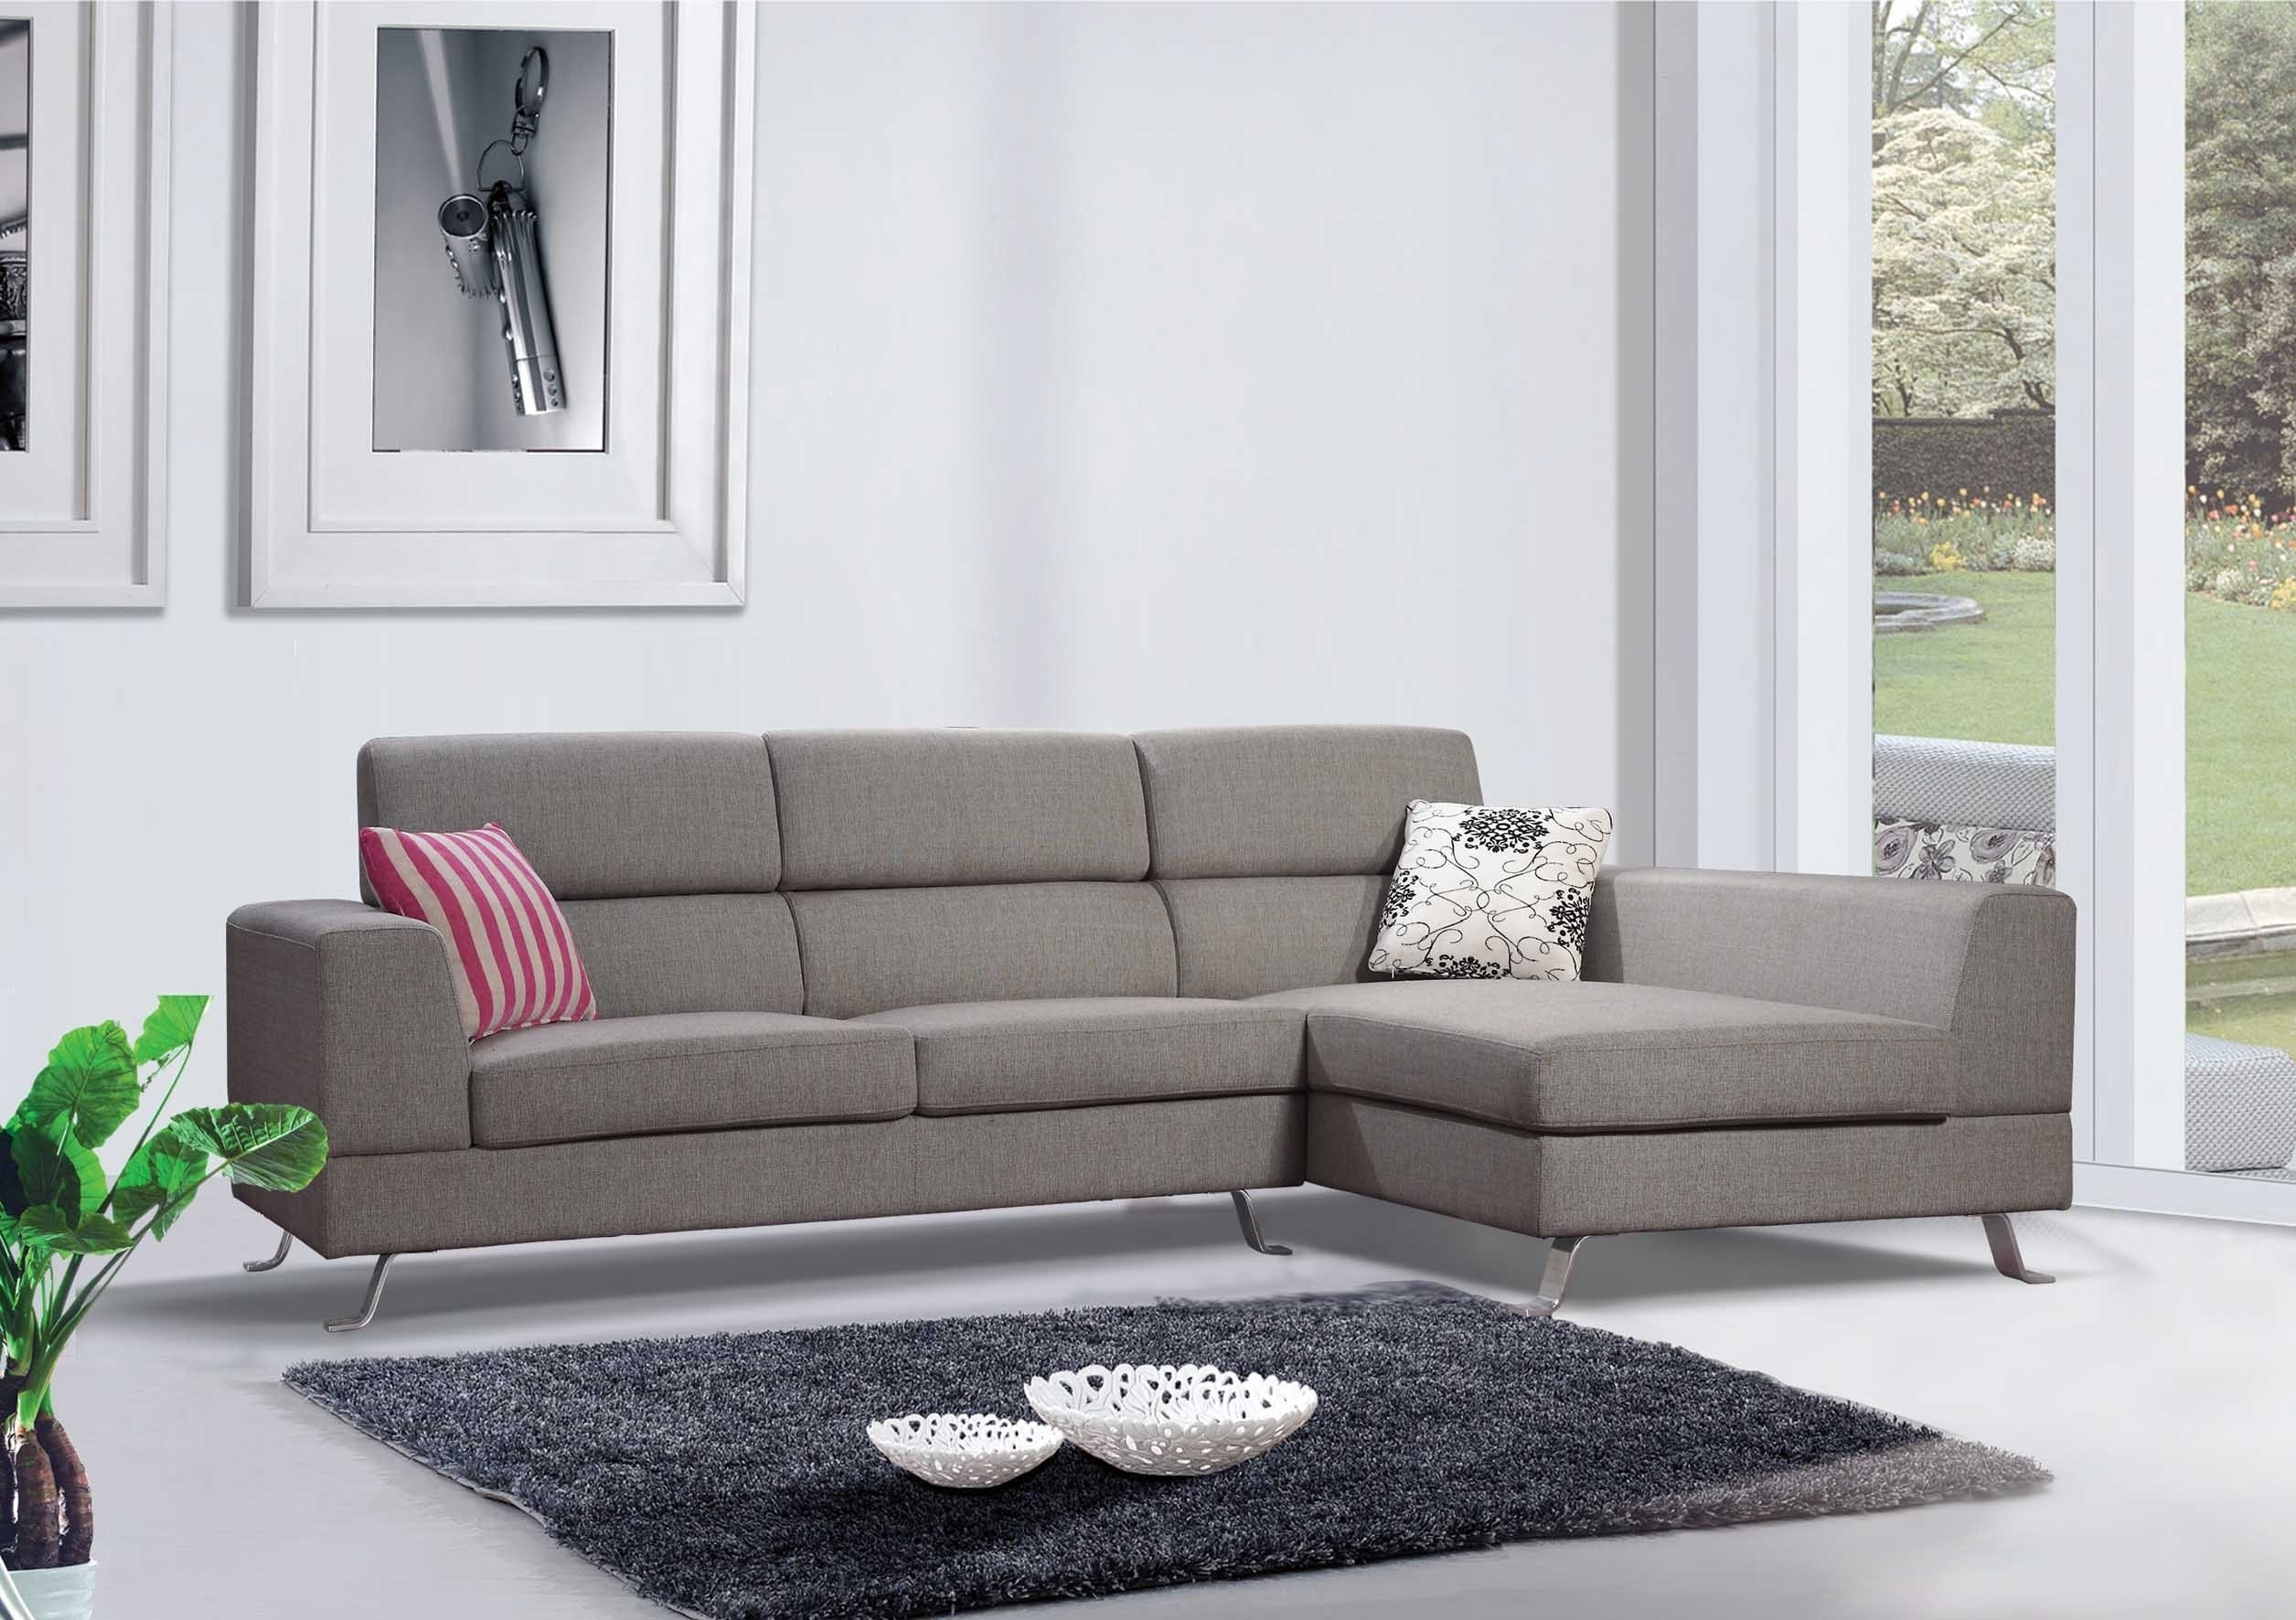 Furniture : Microfiber Costco Sectional Sofa Furnitures Intended For 100X100 Sectional Sofas (Image 3 of 10)